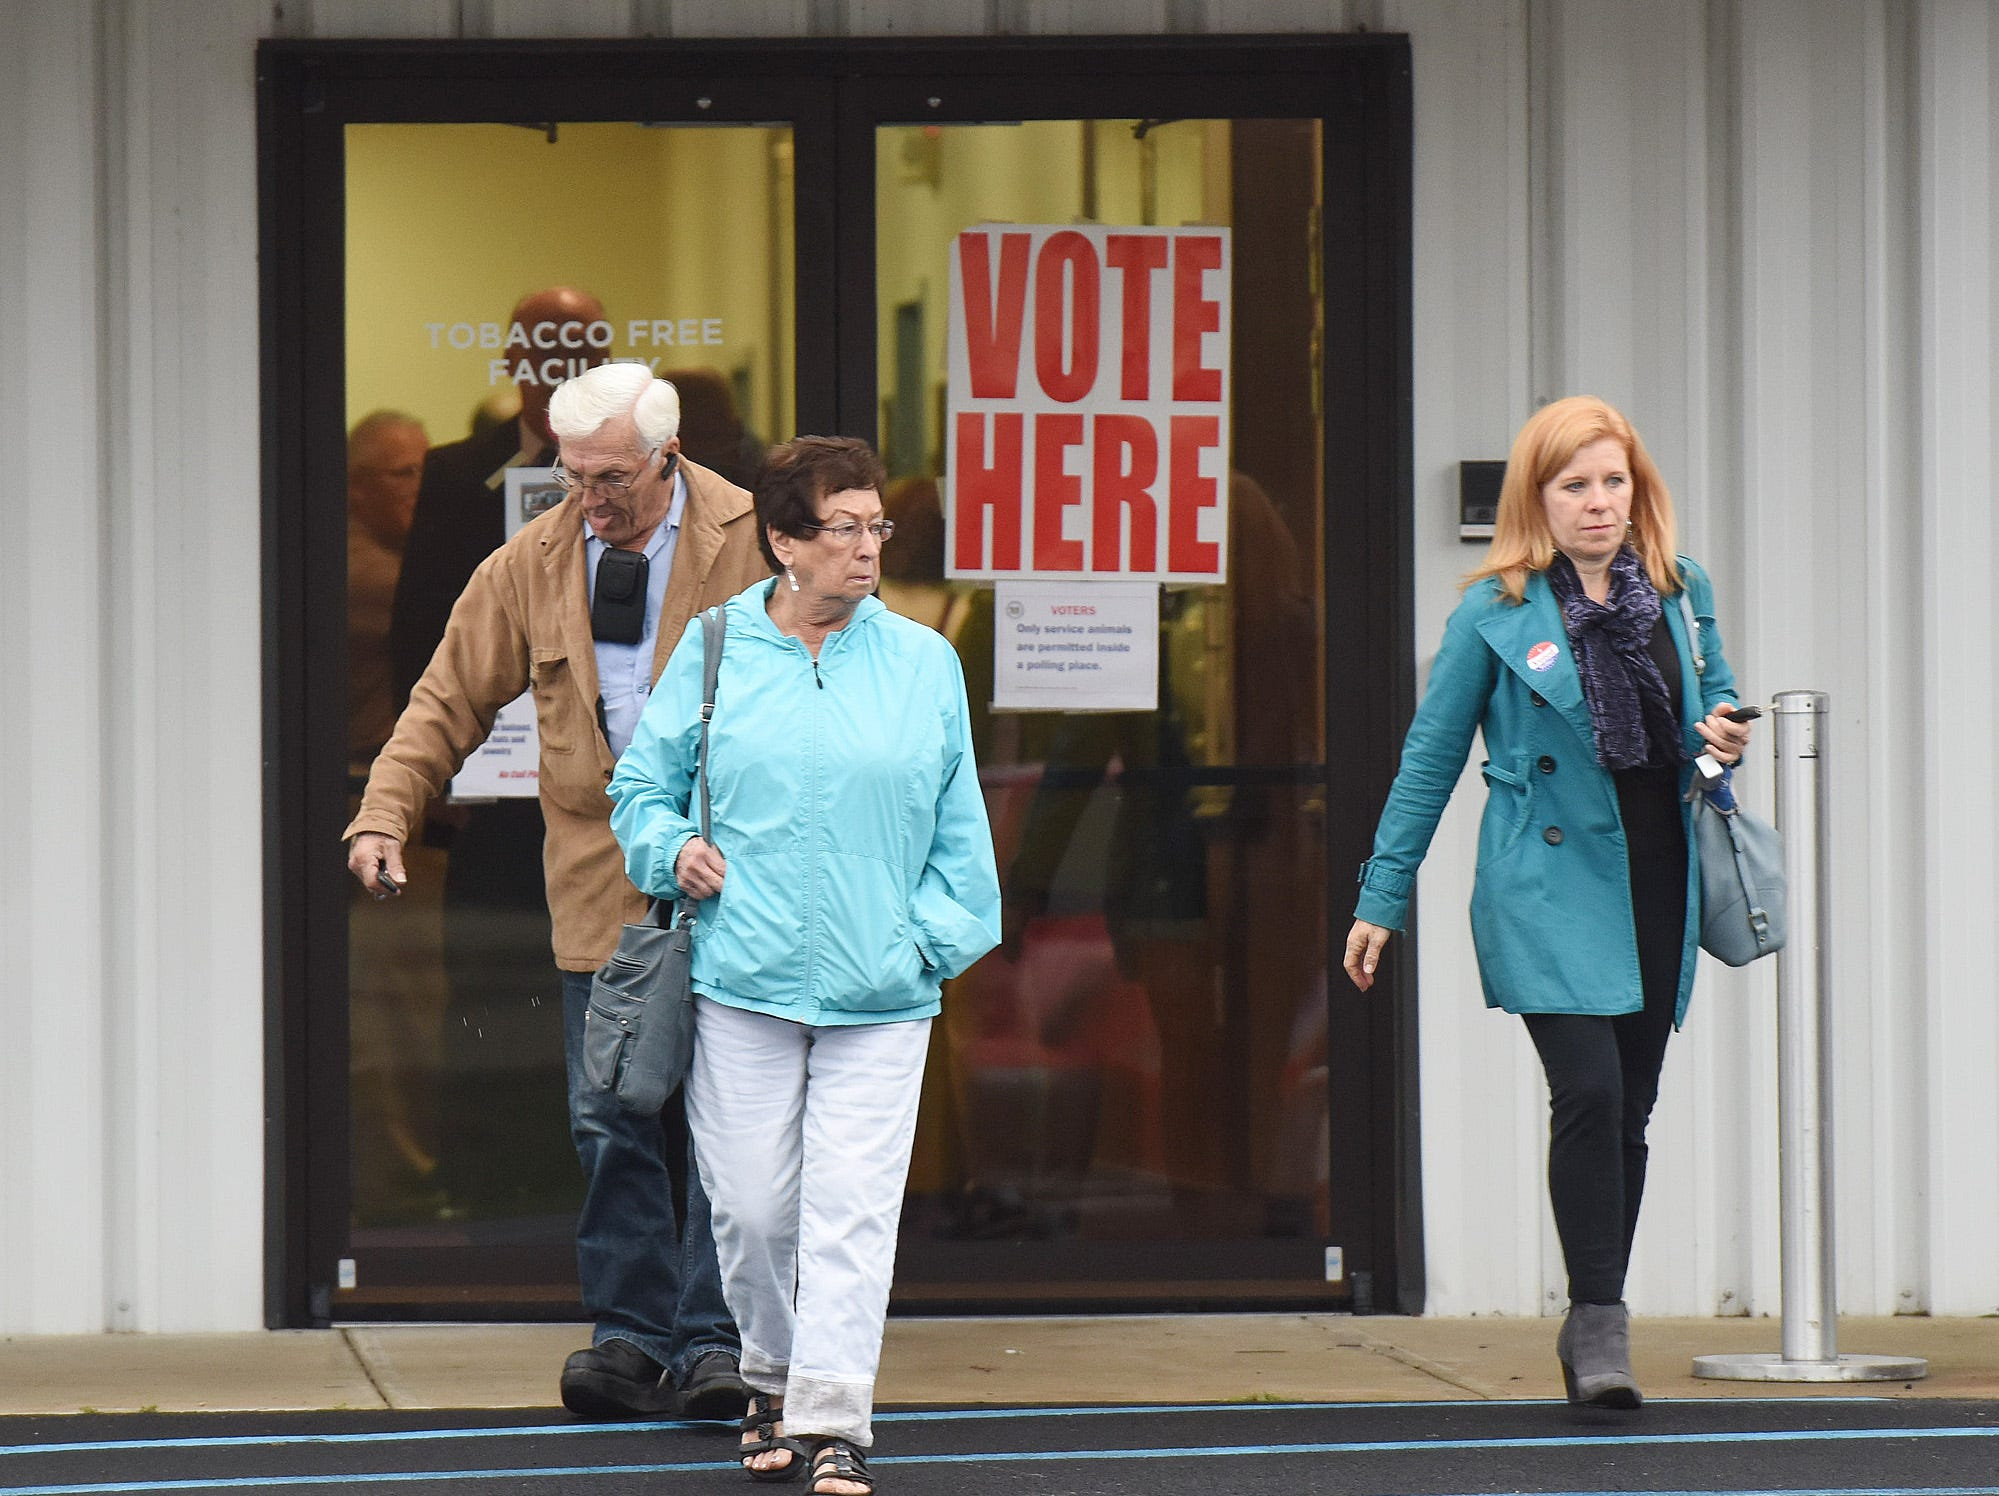 Voter turnout in eastern Sussex County has been steady Tuesday morning at polling places in Rehoboth, Roxana and Angola.